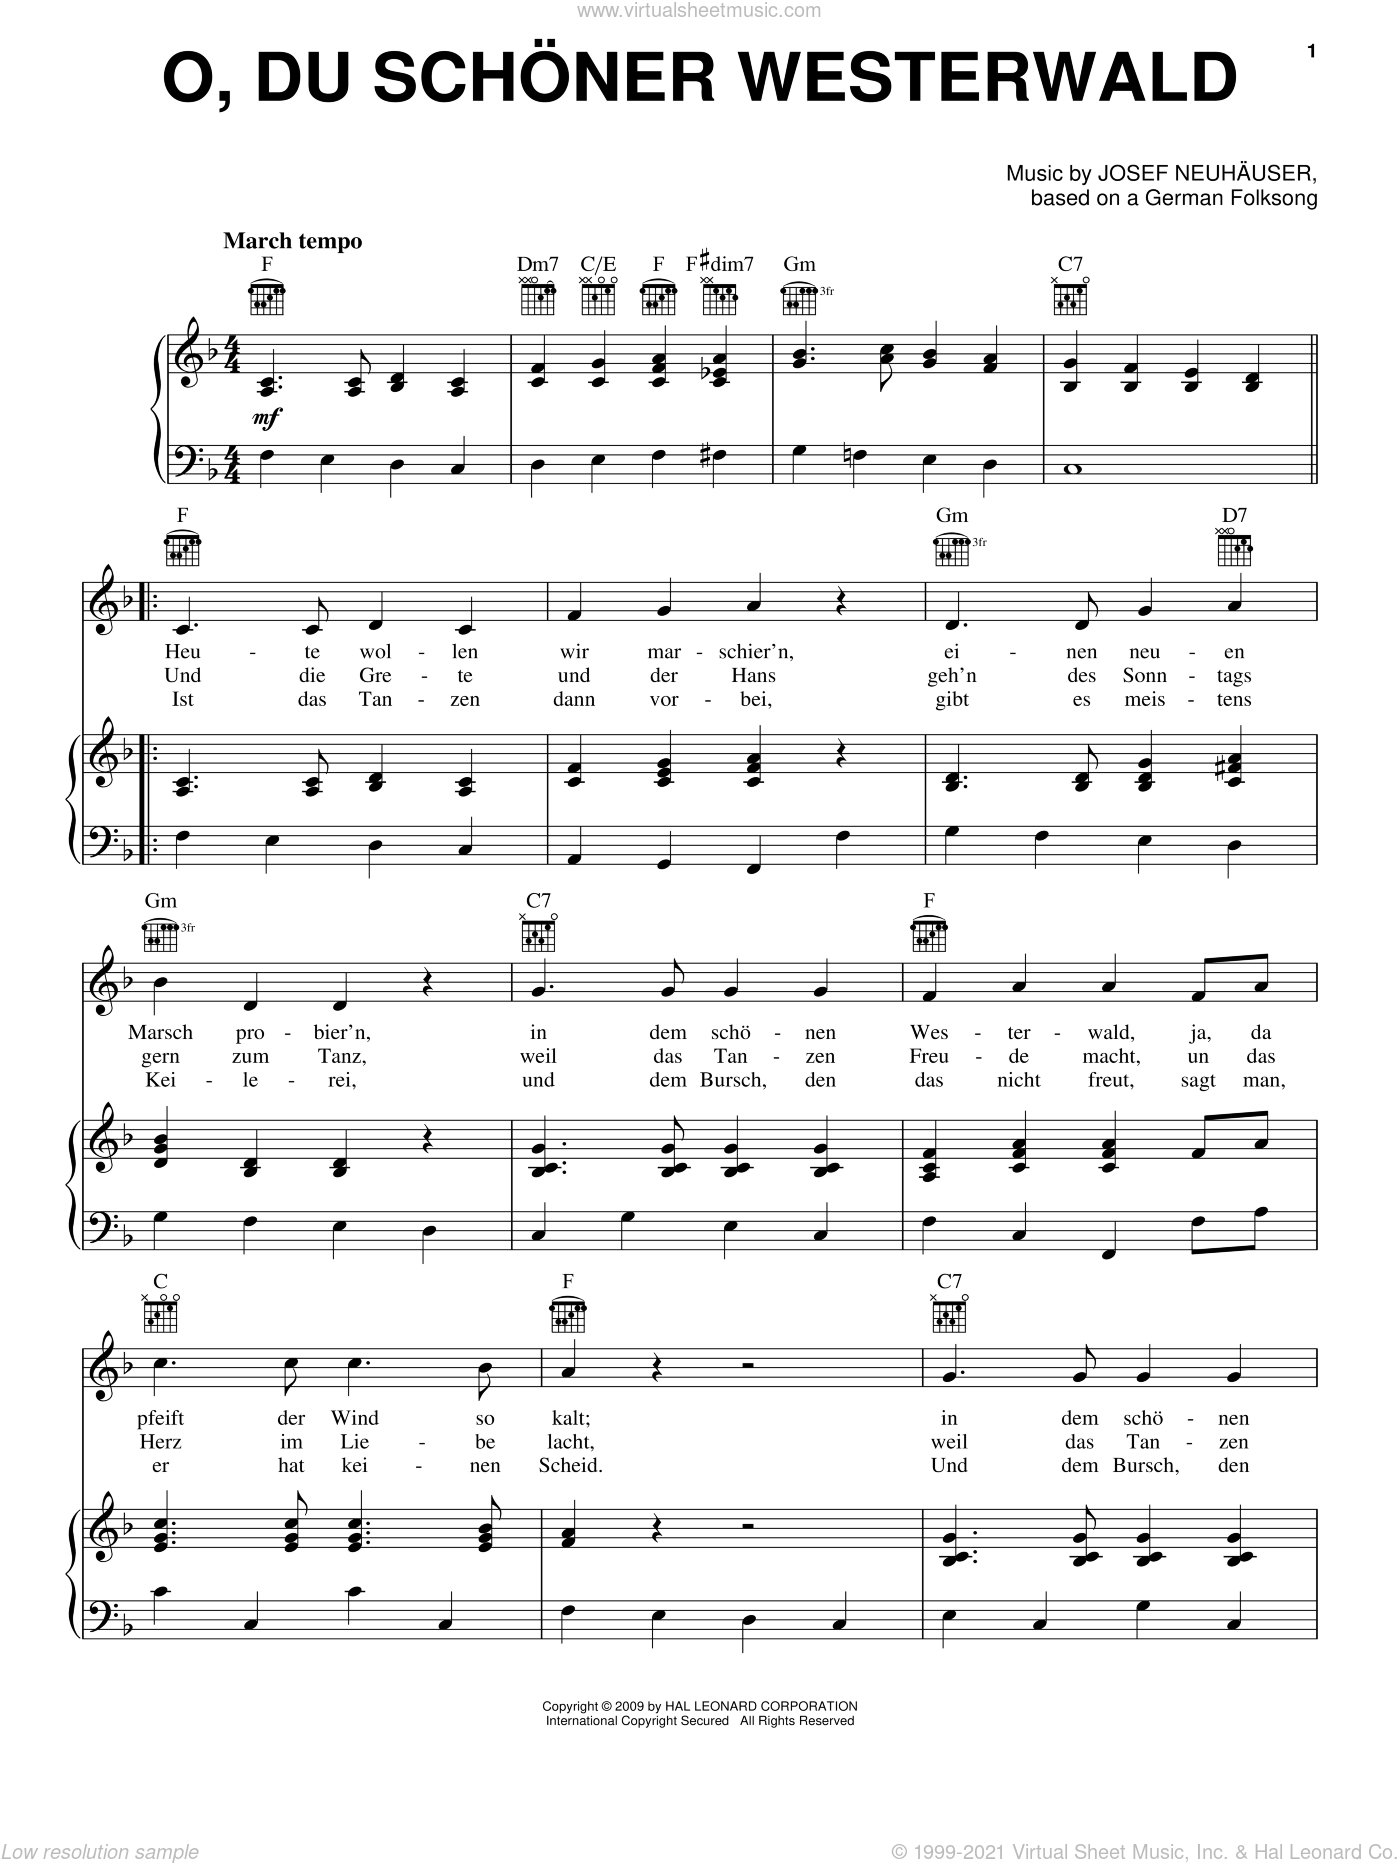 O, Du Schoner Westerwald sheet music for voice, piano or guitar by Josef Neuhauser and Miscellaneous, intermediate. Score Image Preview.